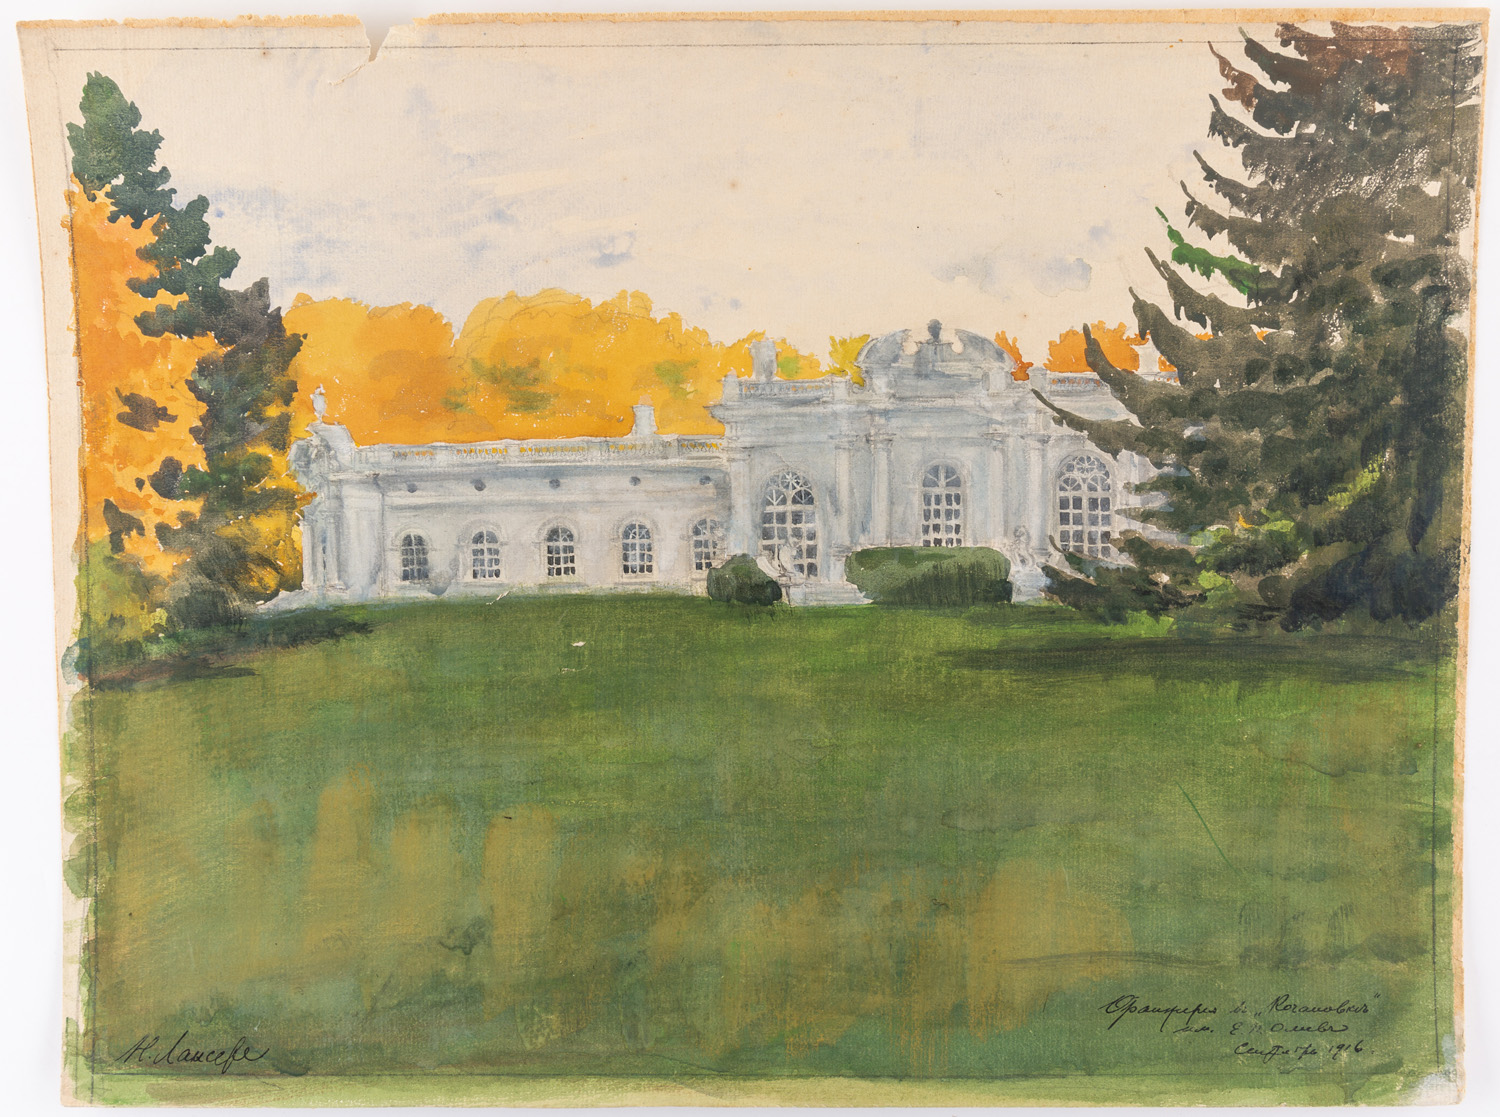 A GROUP OF FOUR ARCHITECTURAL DRAWINGS BY NIKOLAI LANCERAY (RUSSIAN 1879-1942) - Image 5 of 13